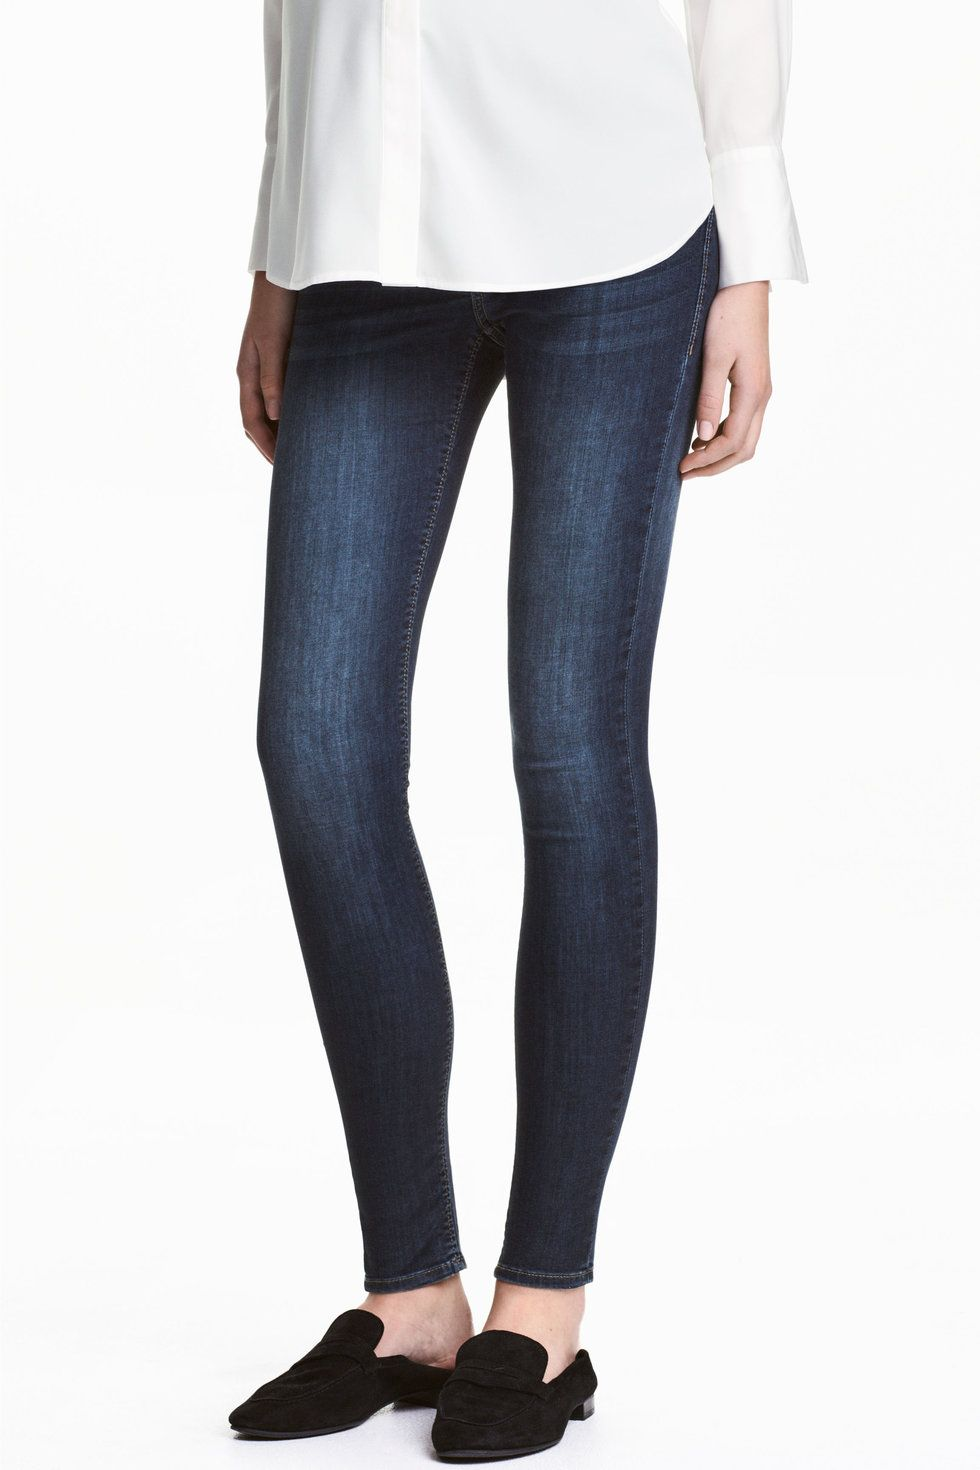 d6430c3f8e574 The 10 Best Maternity Jeans - Motherly